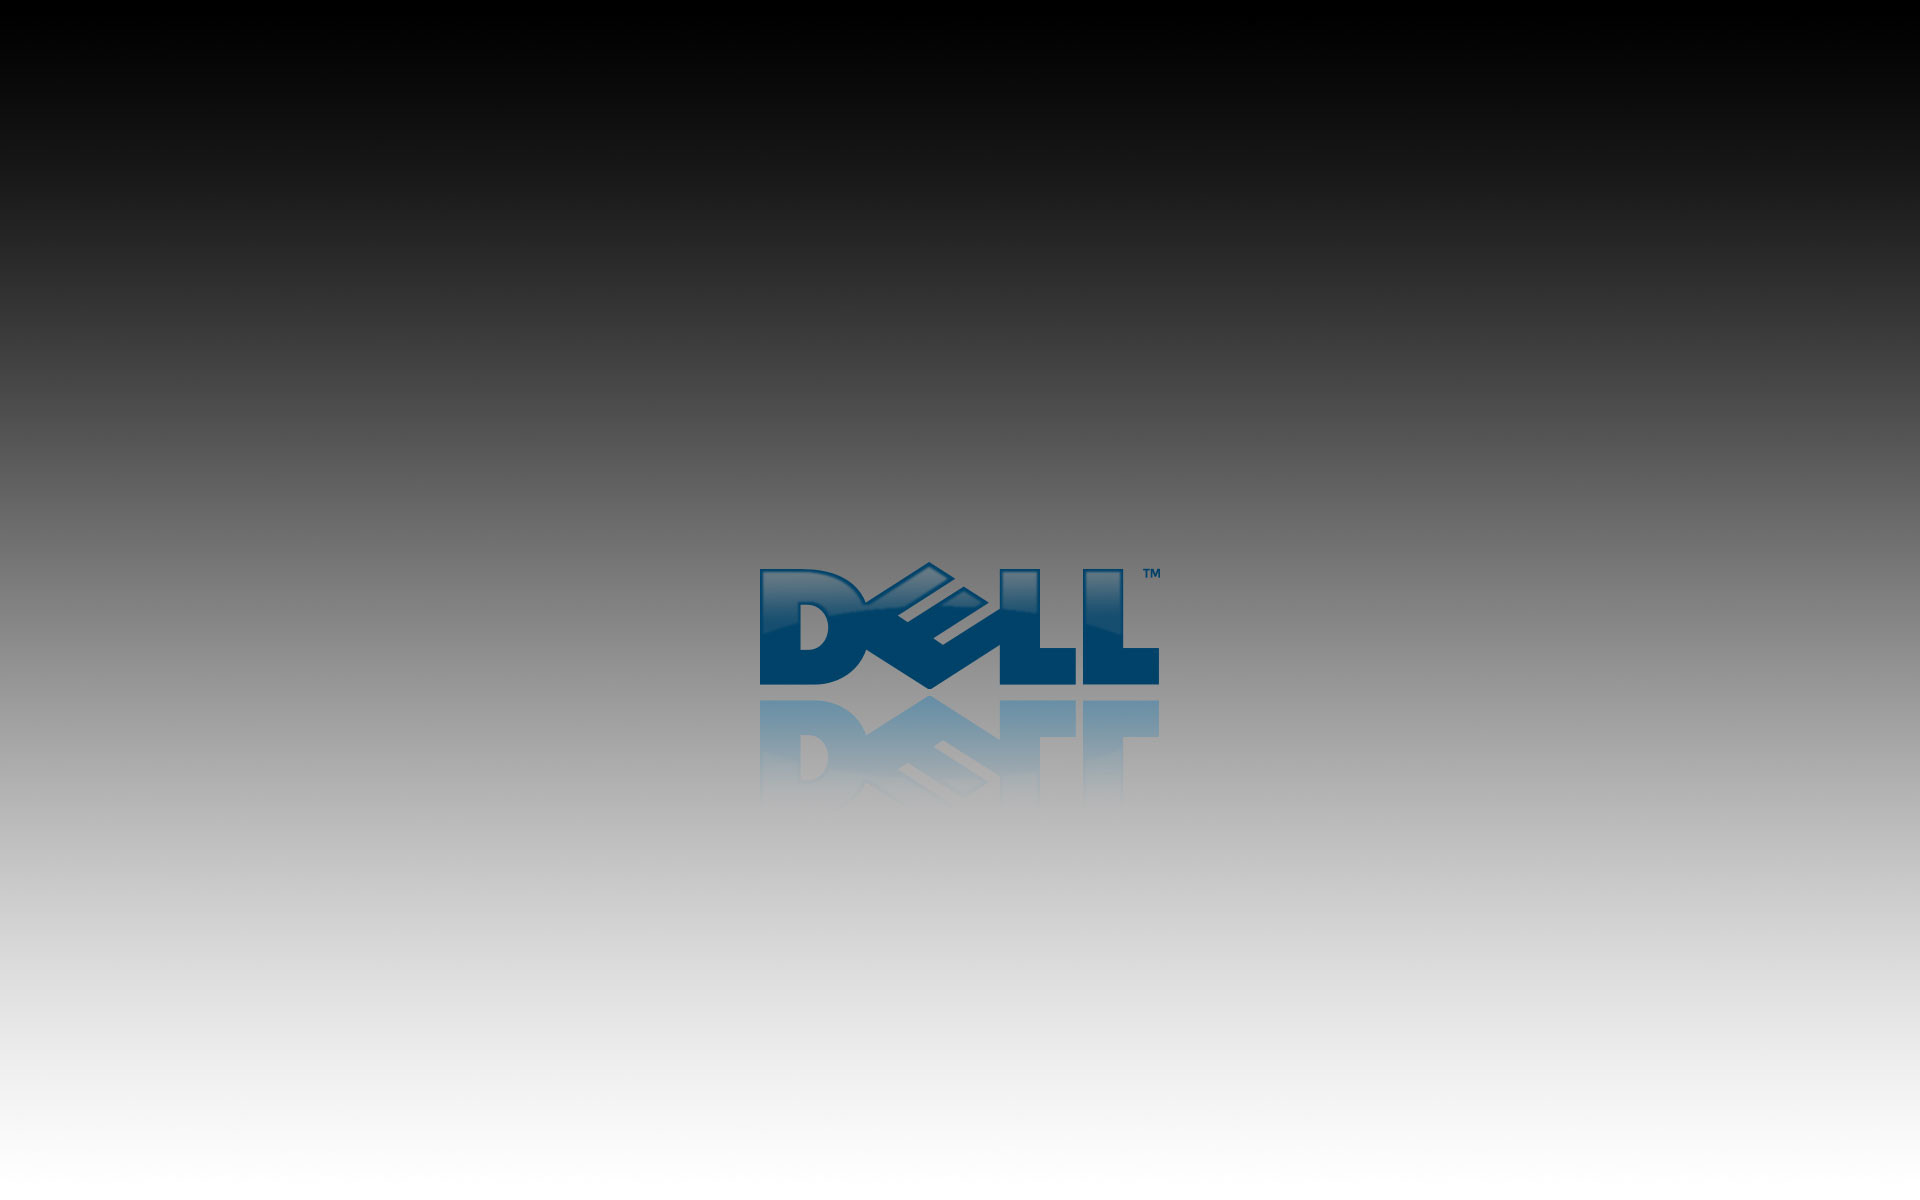 1920x1200 Dell Gradient Computer Wallpaper 58778